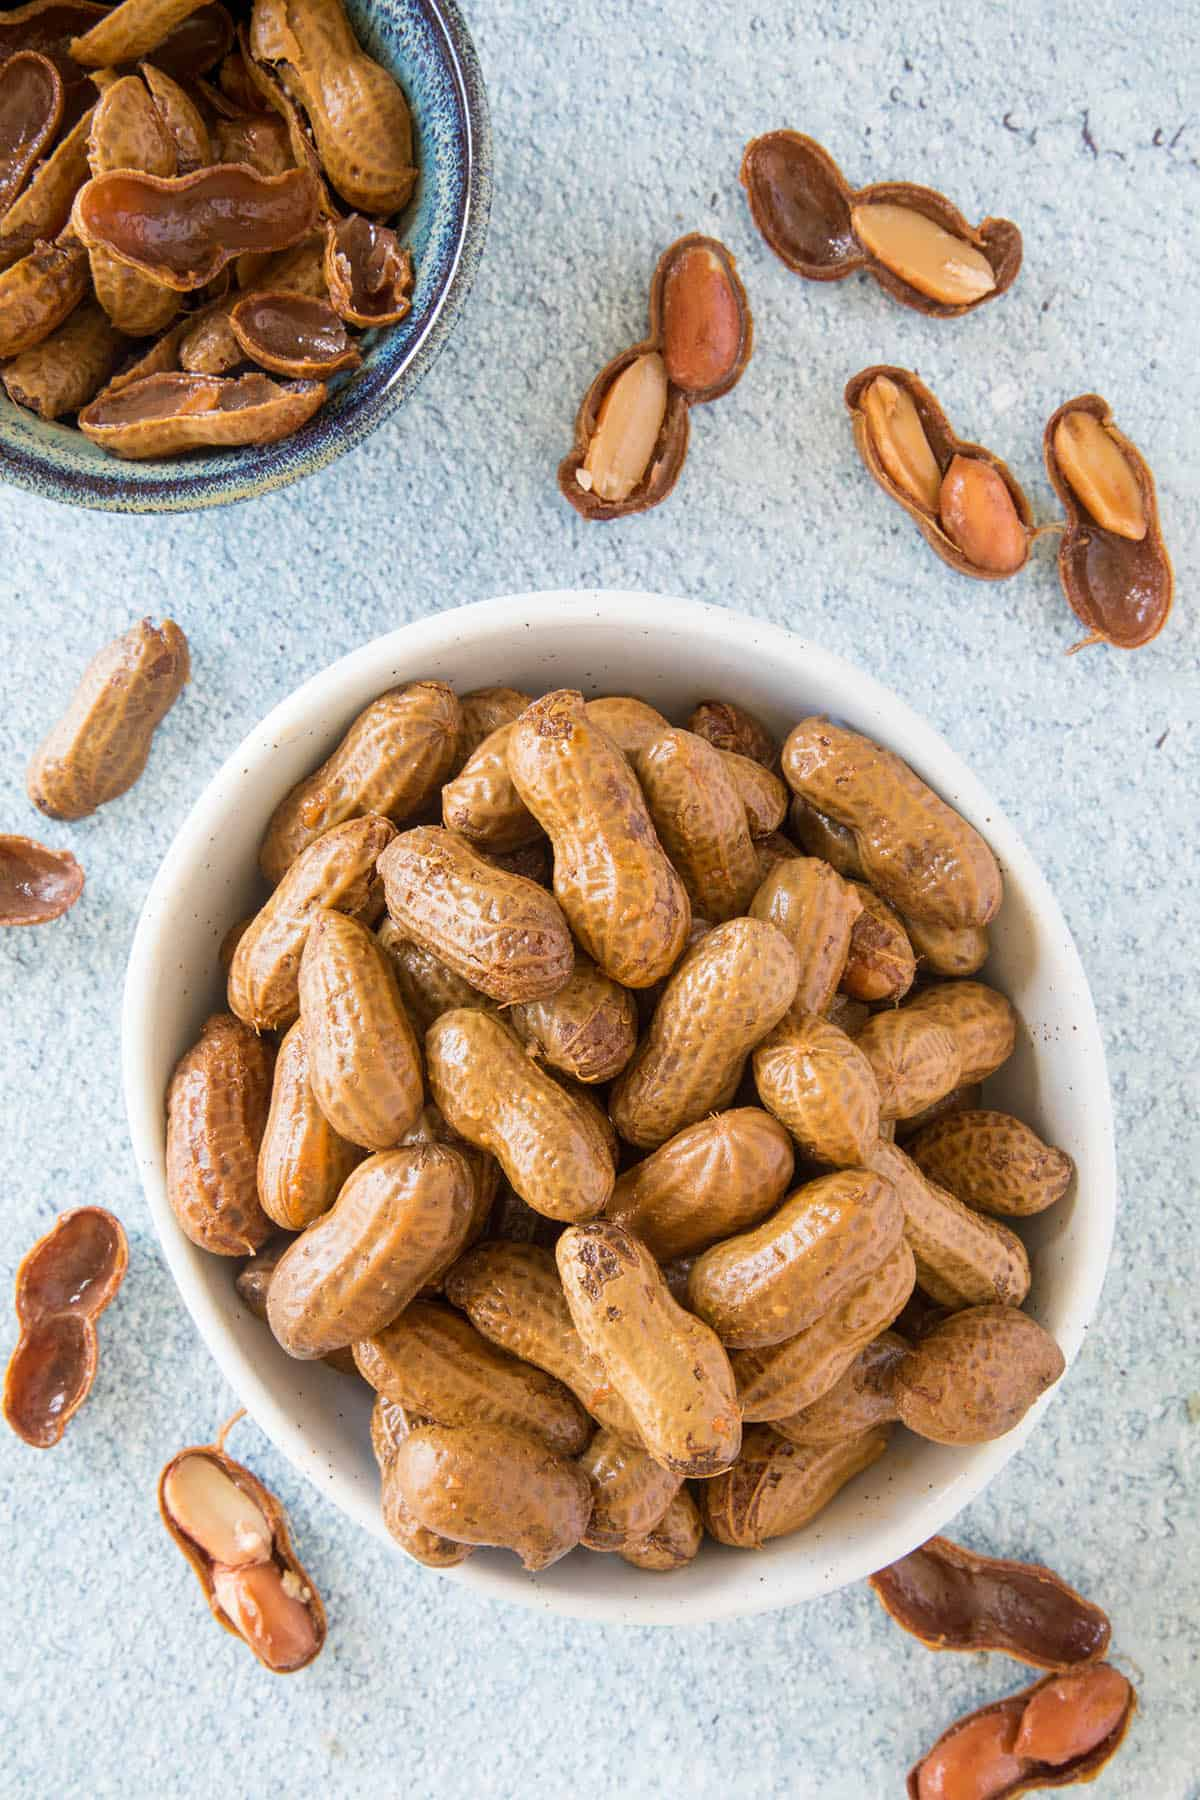 Cajun Boiled Peanuts in a bowl, ready to eat